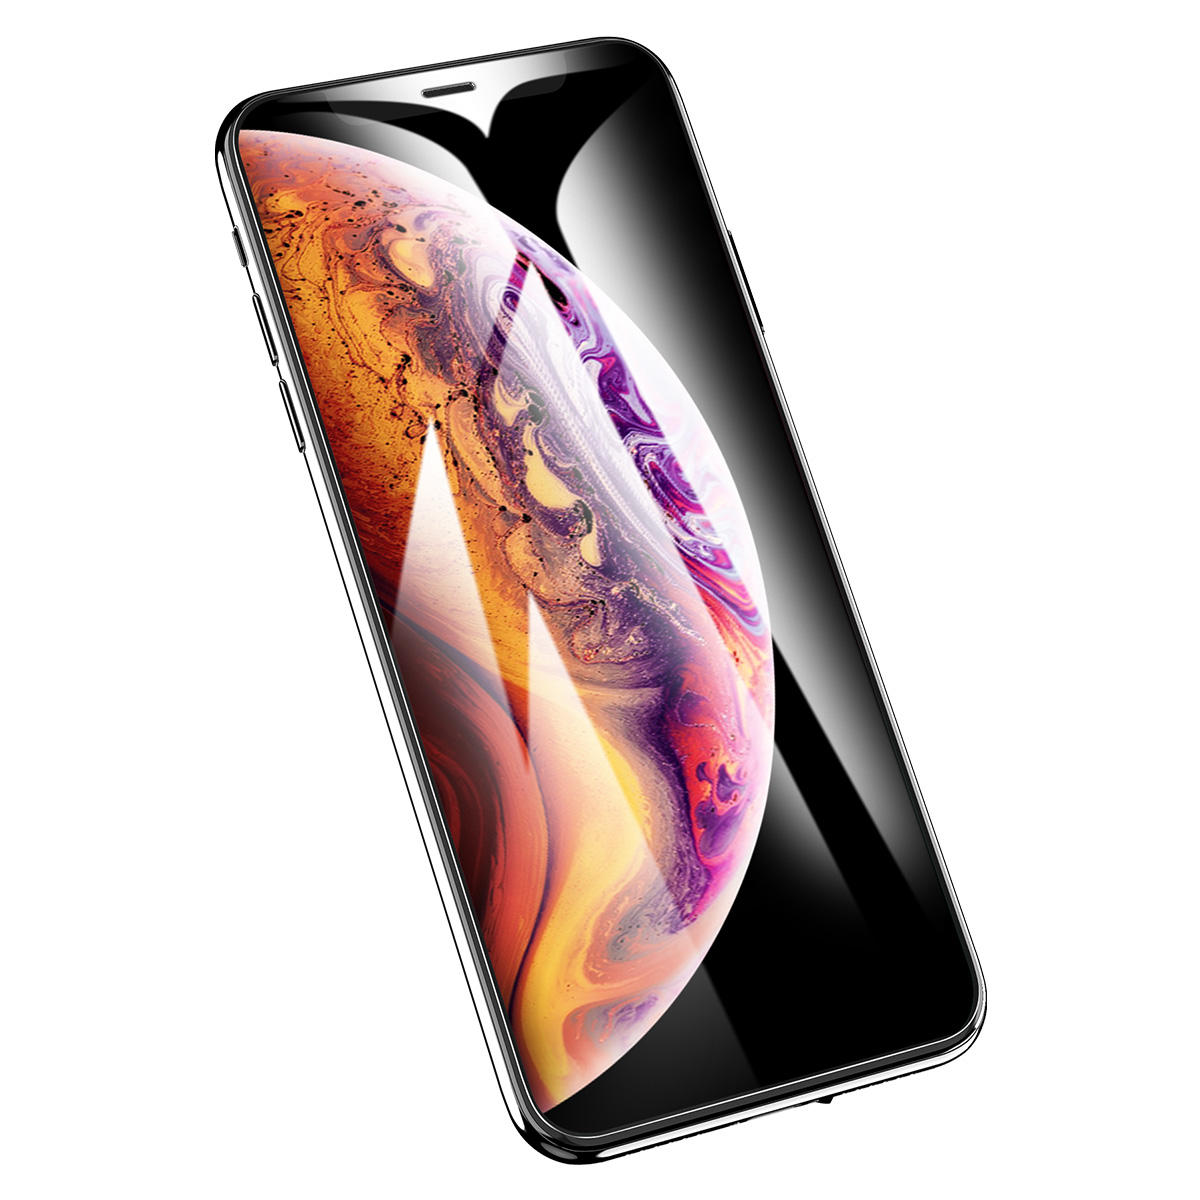 Rock New 9D Hydrogel Screen Protector For iPhone XS Max/iPhone 11 Pro Max 0.1mm Clear Bubble Free Full Coverage Film